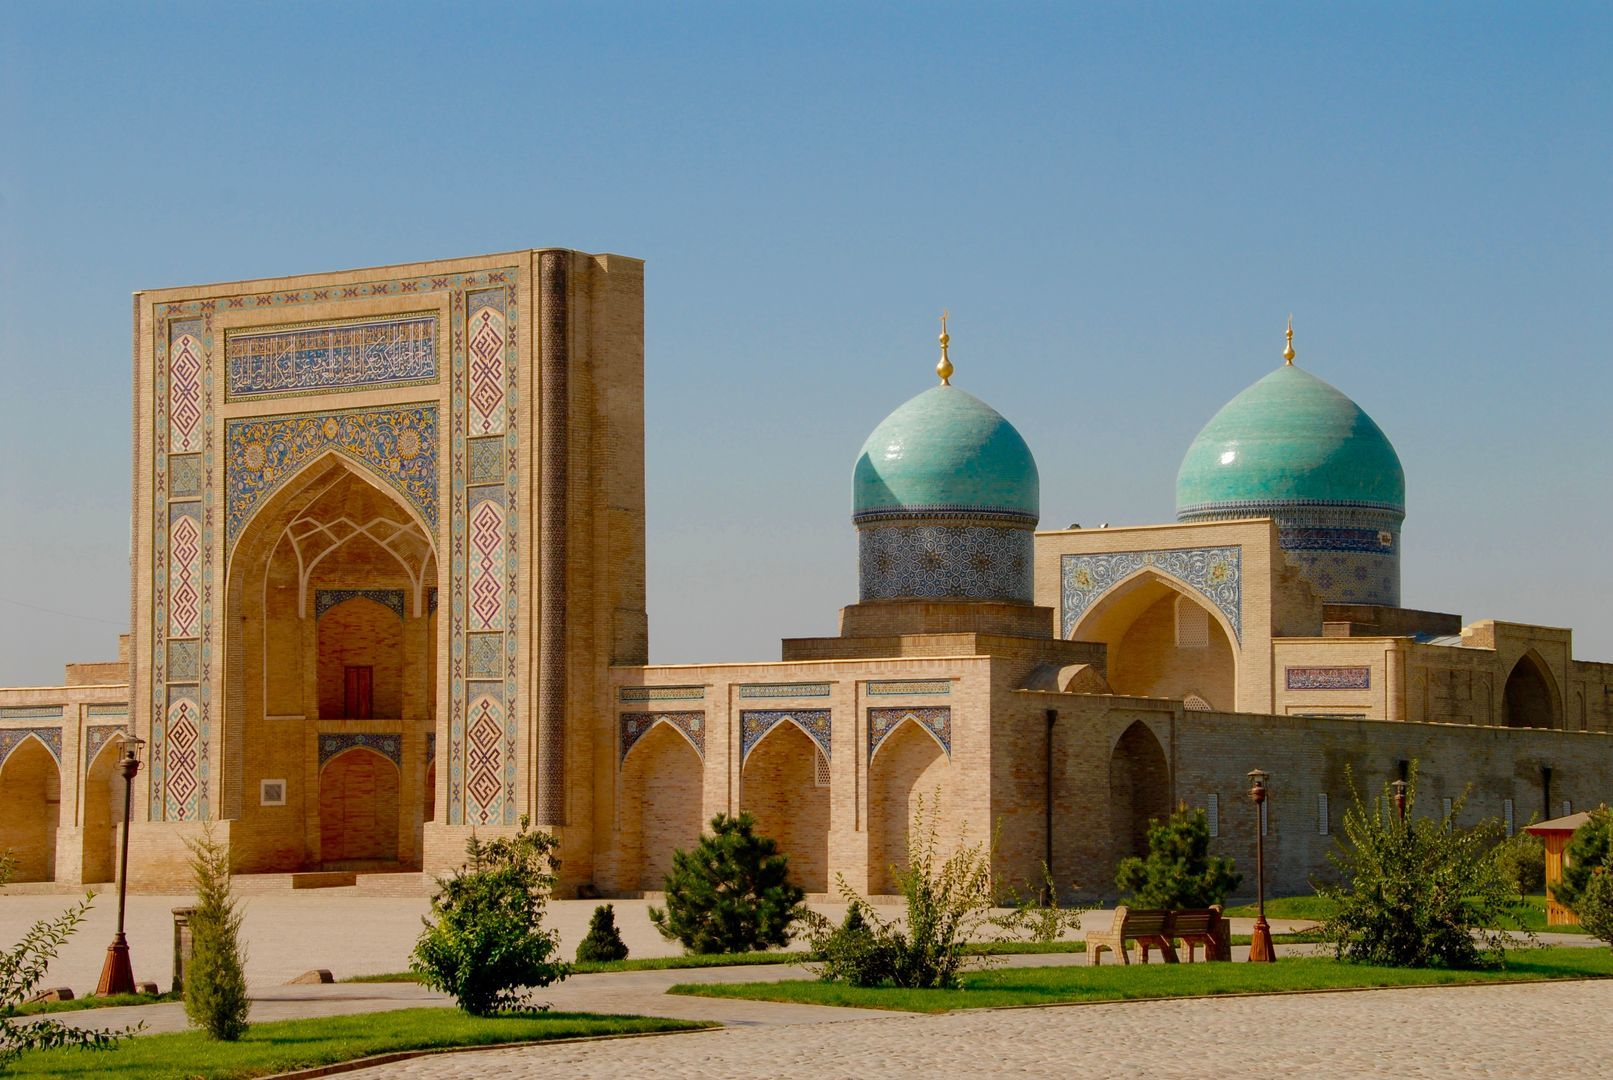 Tashkent Mosque in Uzbekistan in combination tour with expo 2017